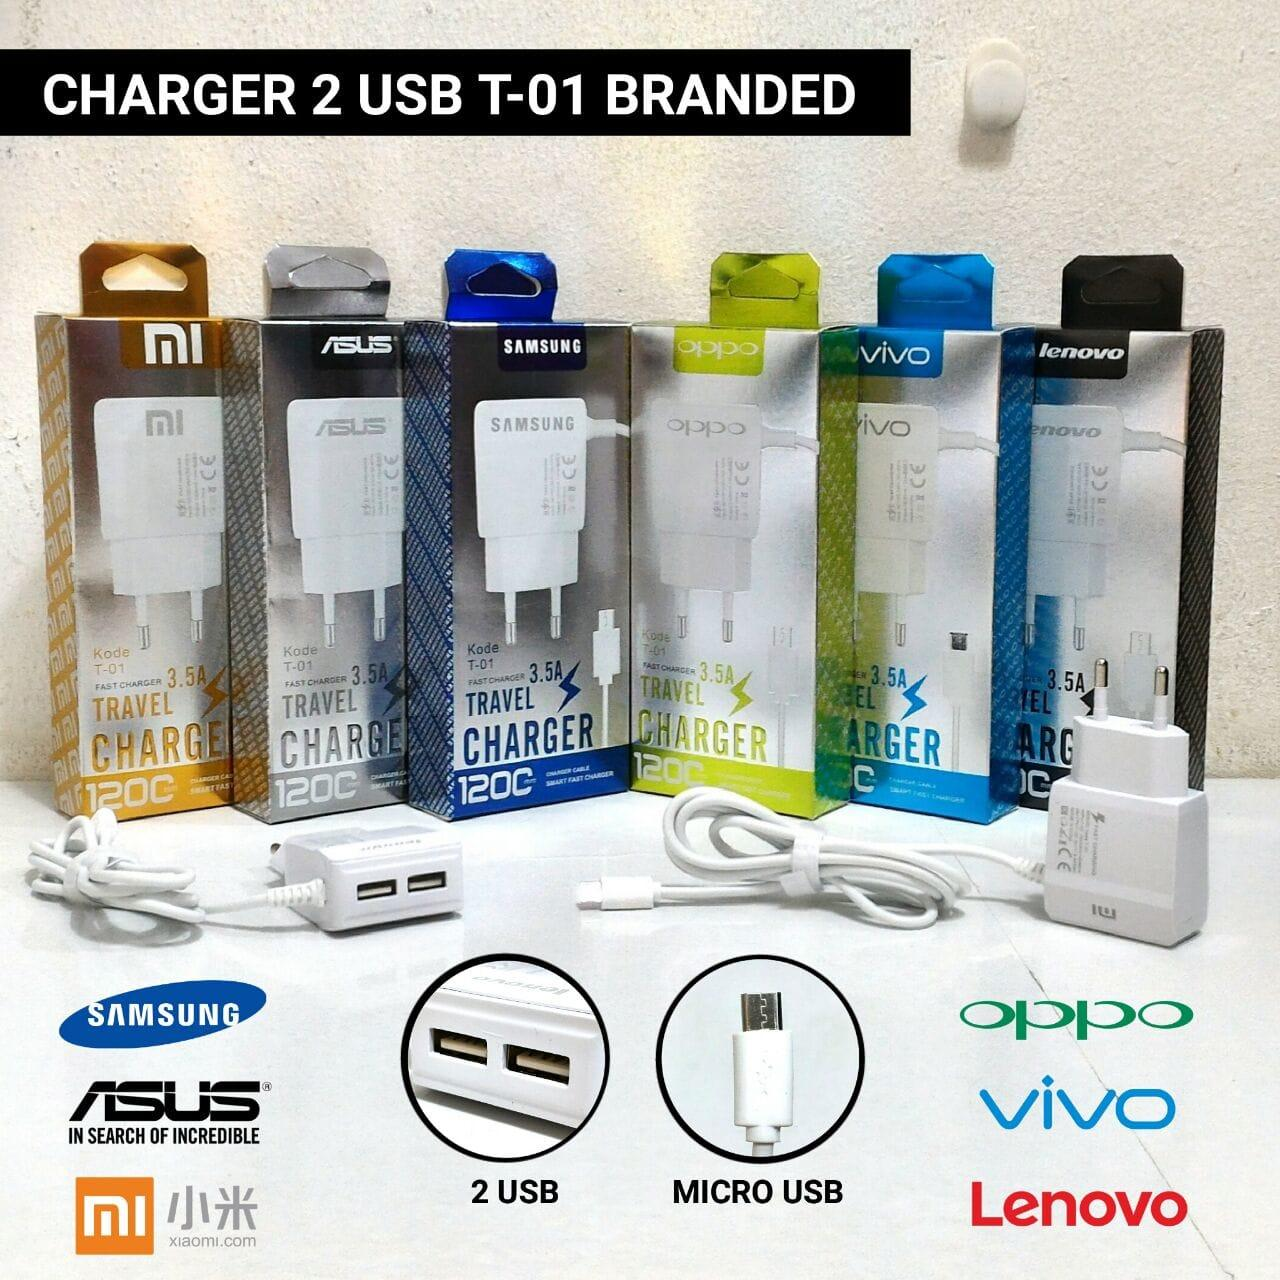 Charger 2 USB T01 3.5A OPPO